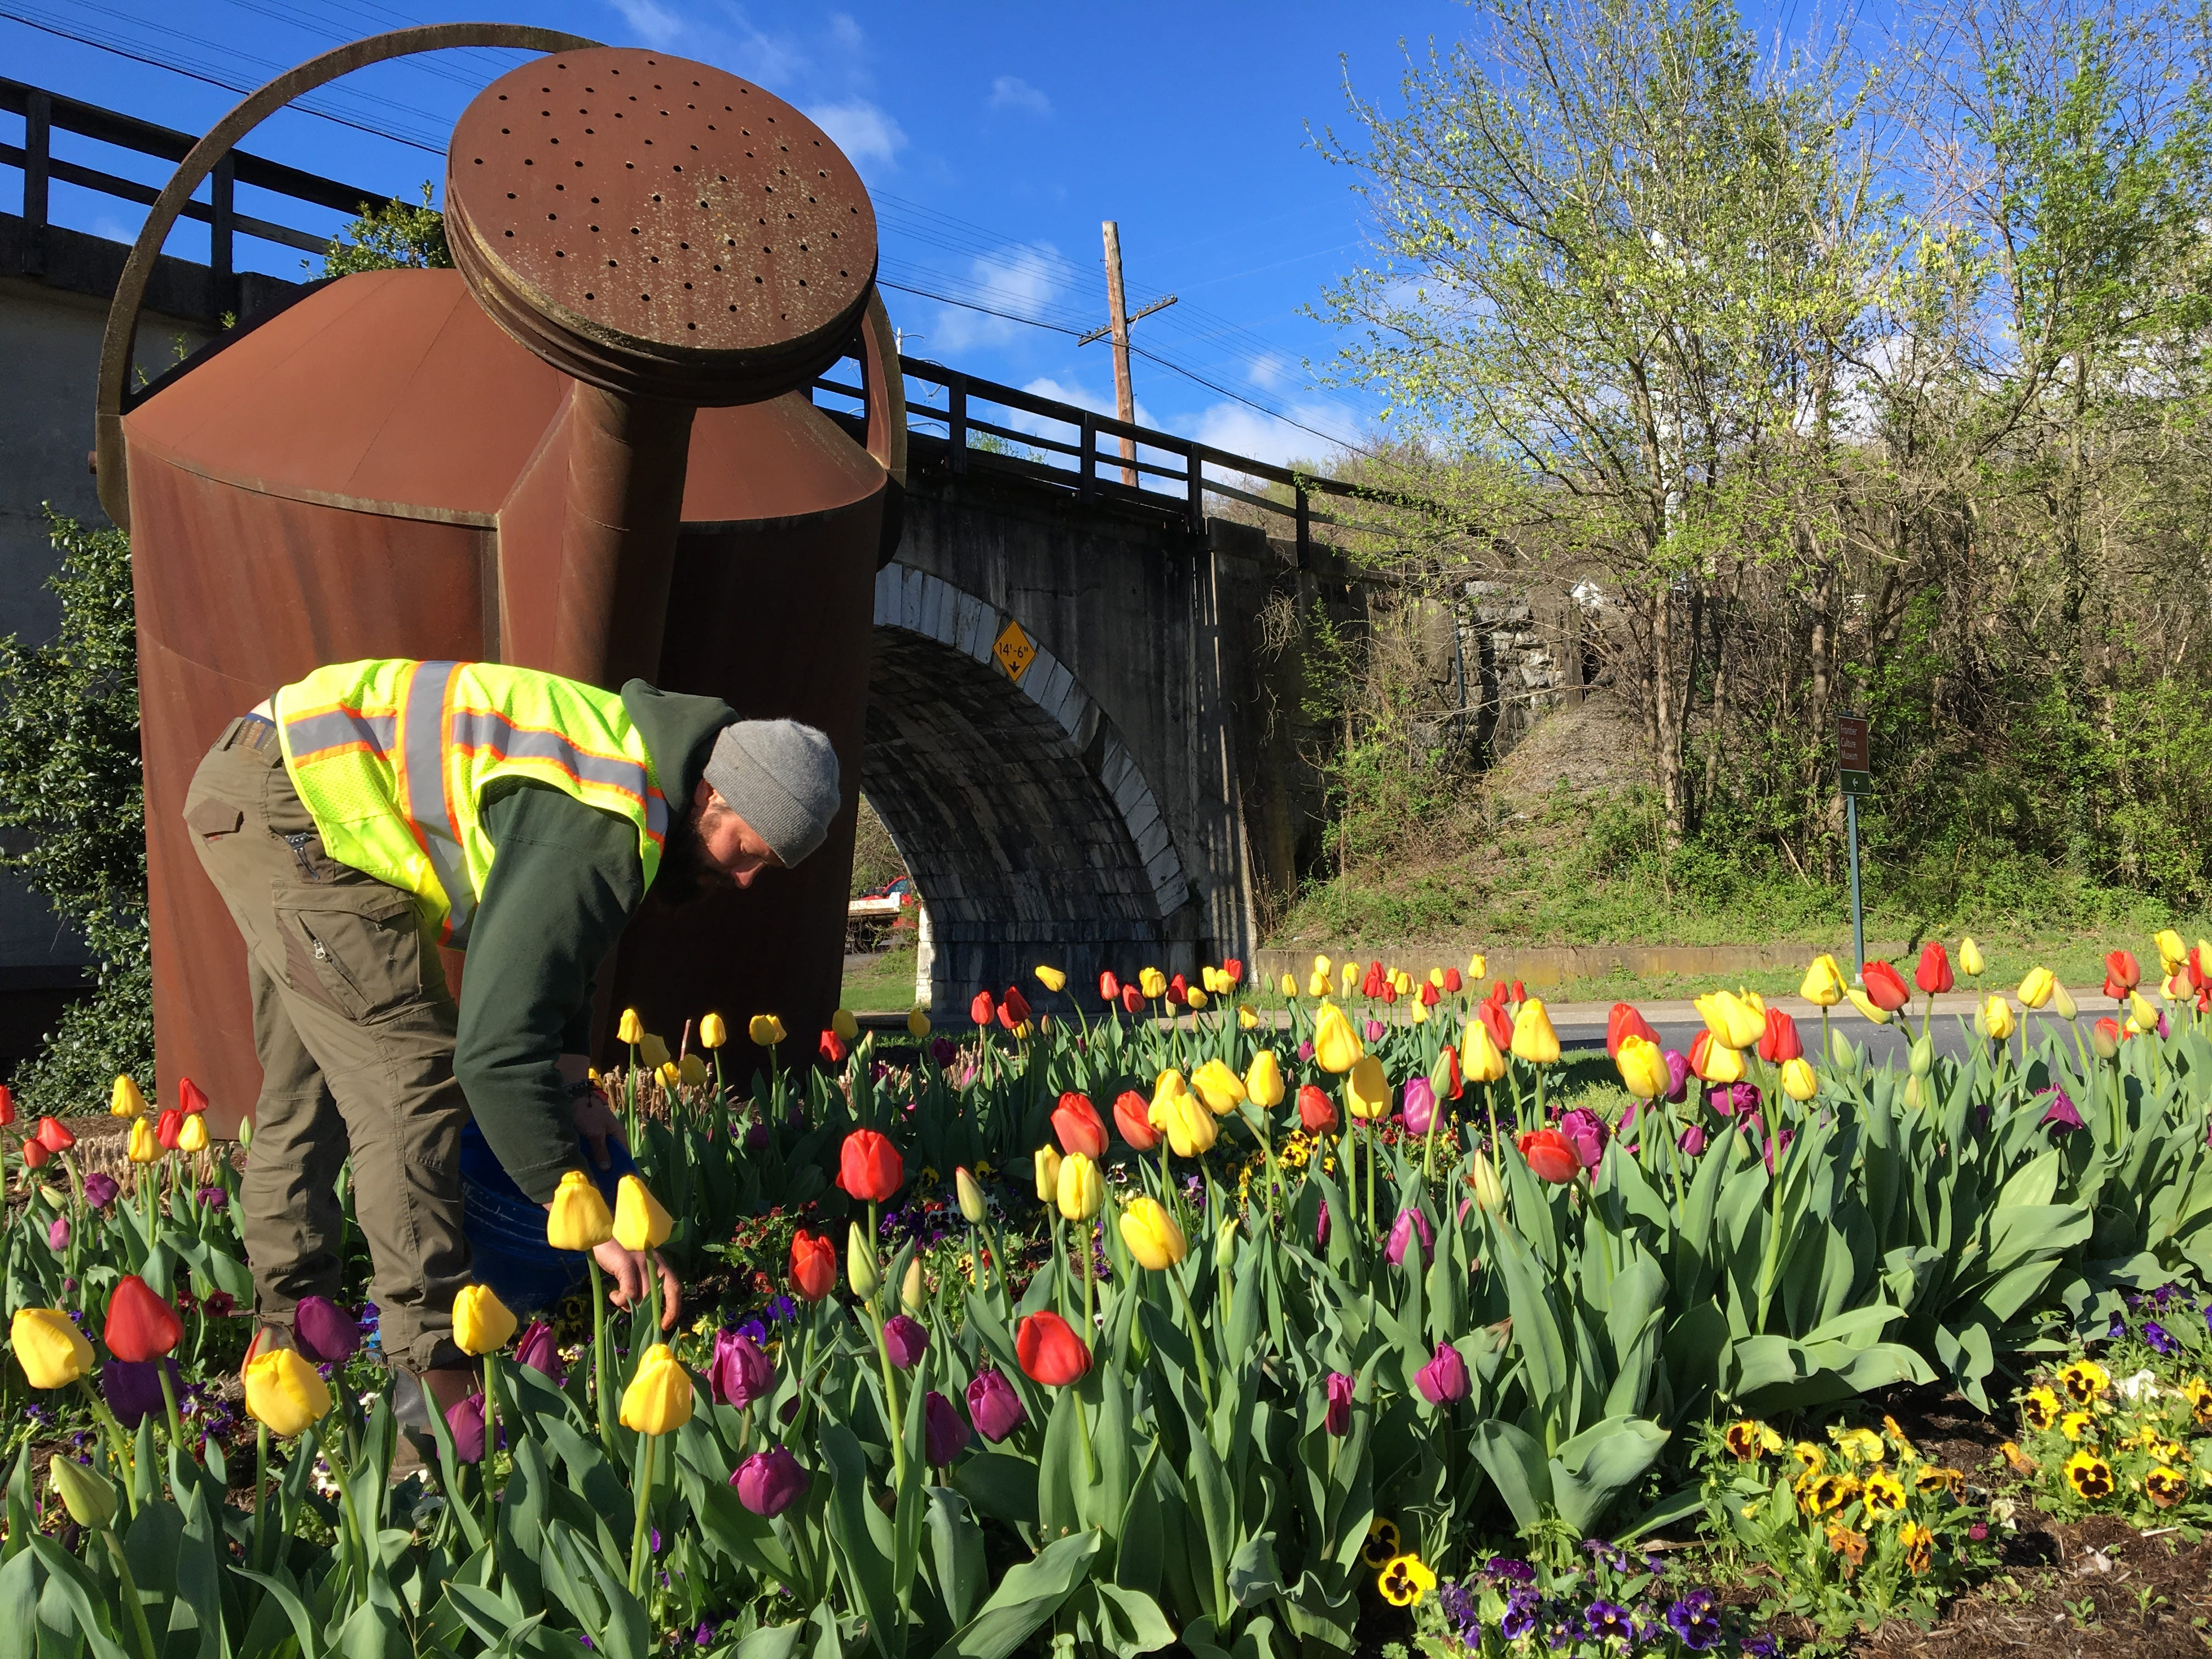 Horticulturist Ben Hastert leans down to pull weeds in between the tulips and pansies.